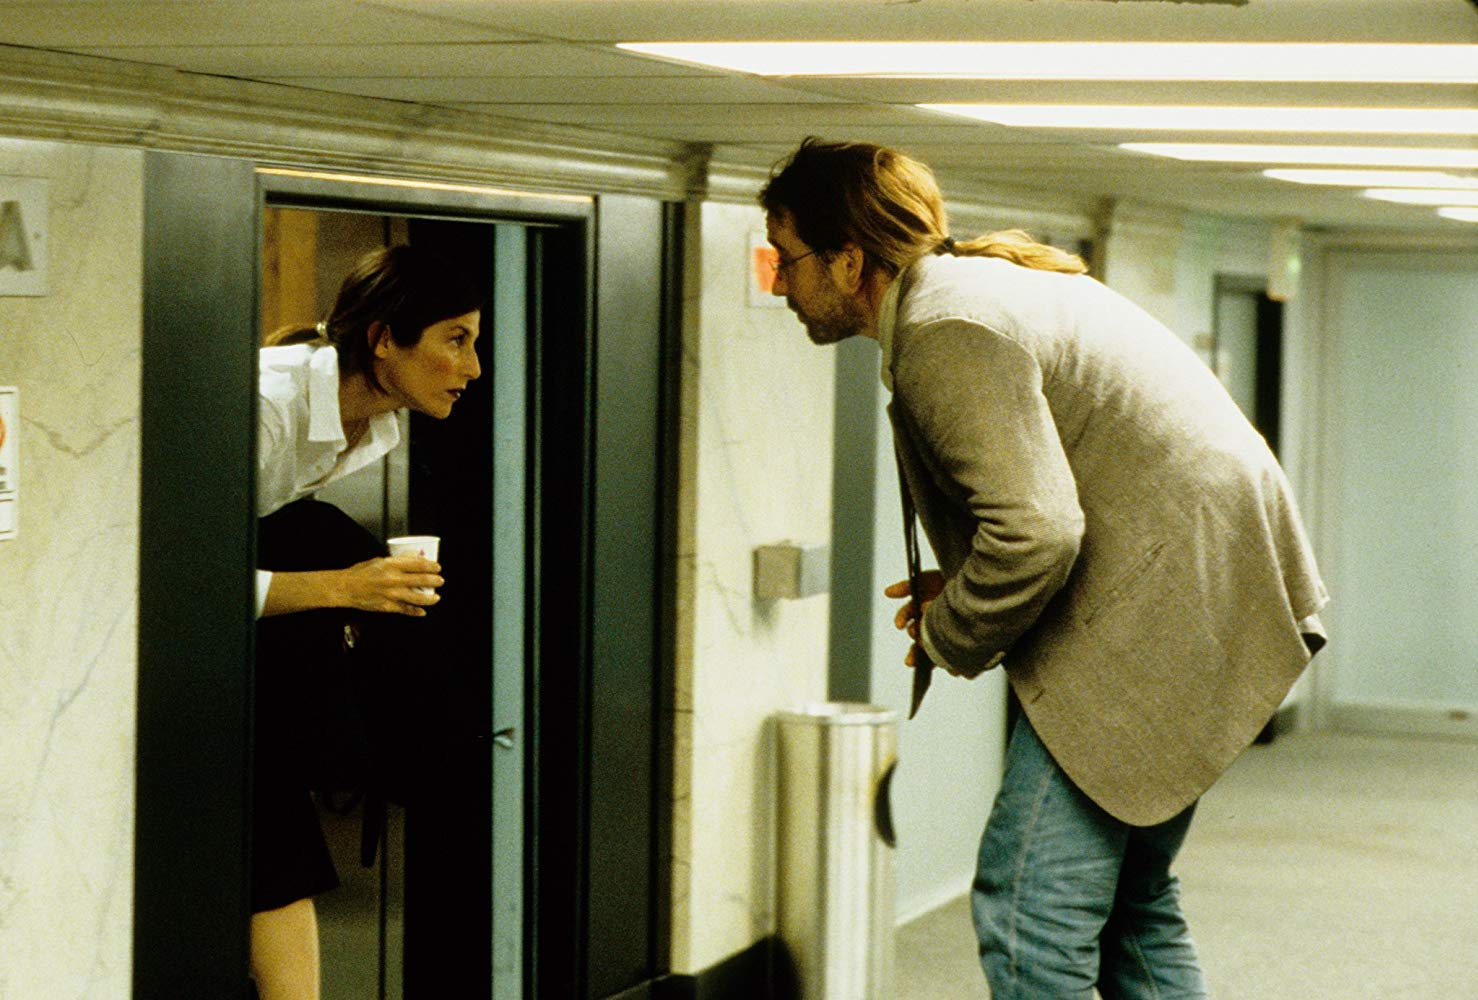 John Cusack and co-worker Catherine Keener in their workplace on the on the 7½th Floor in Being John Malkovich (1999)